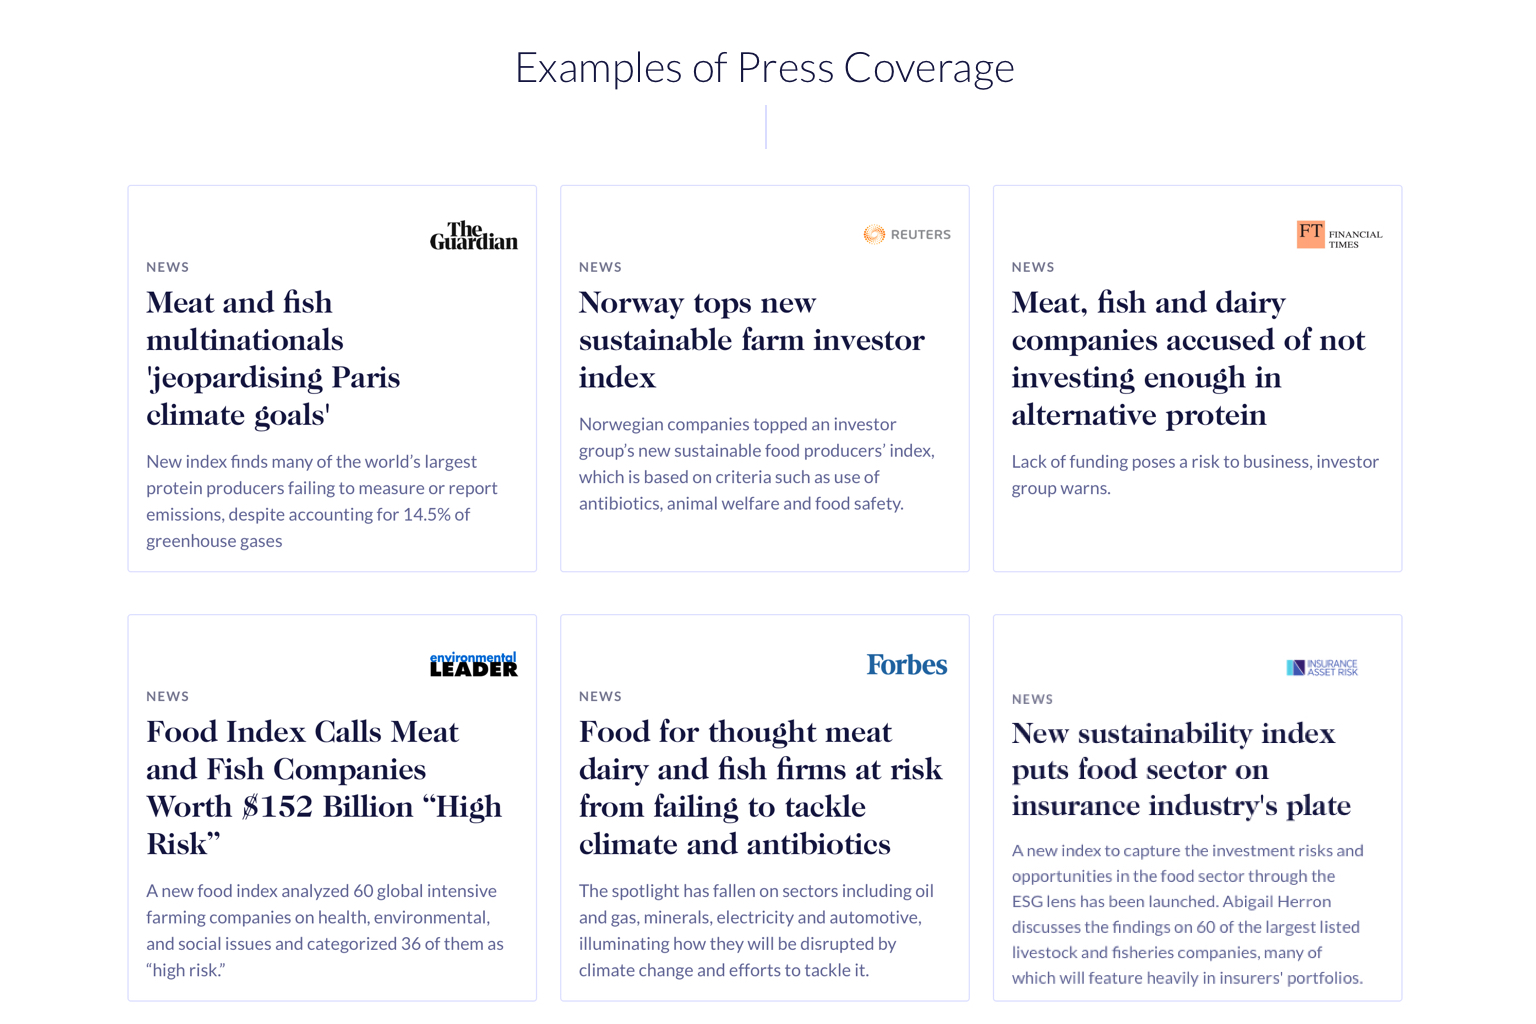 fairr-presscoverage